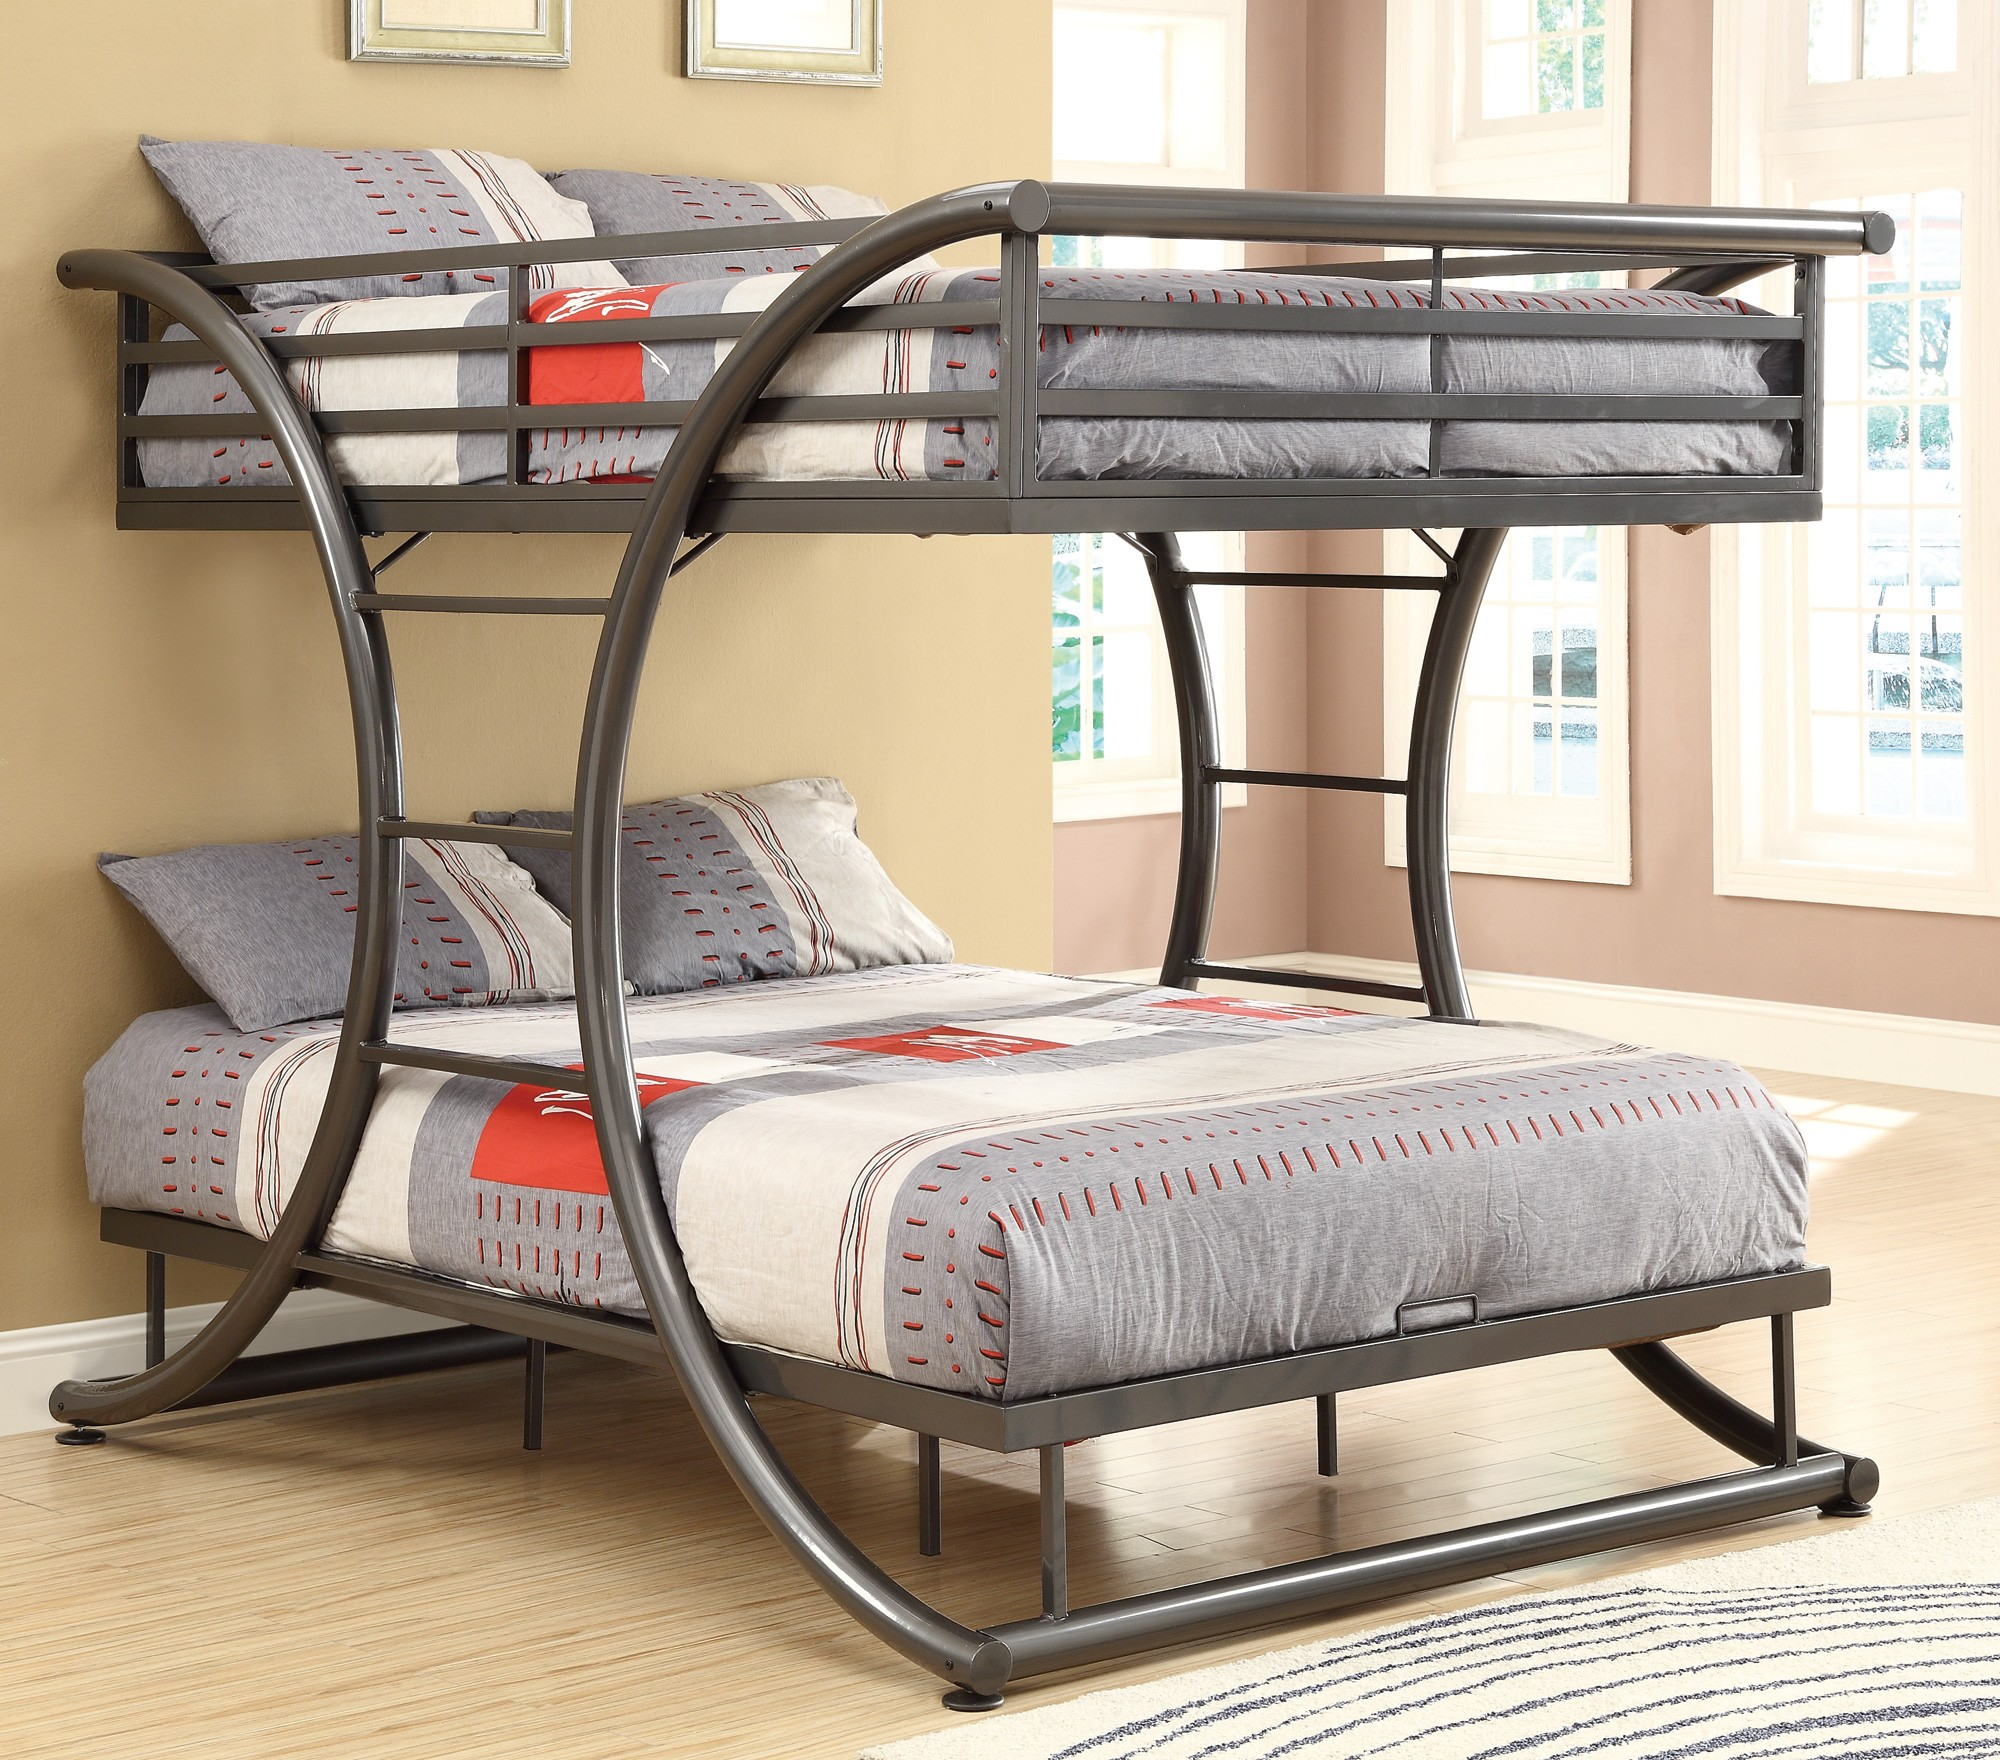 wood bed garden paloma today over free shipping bunk product home full